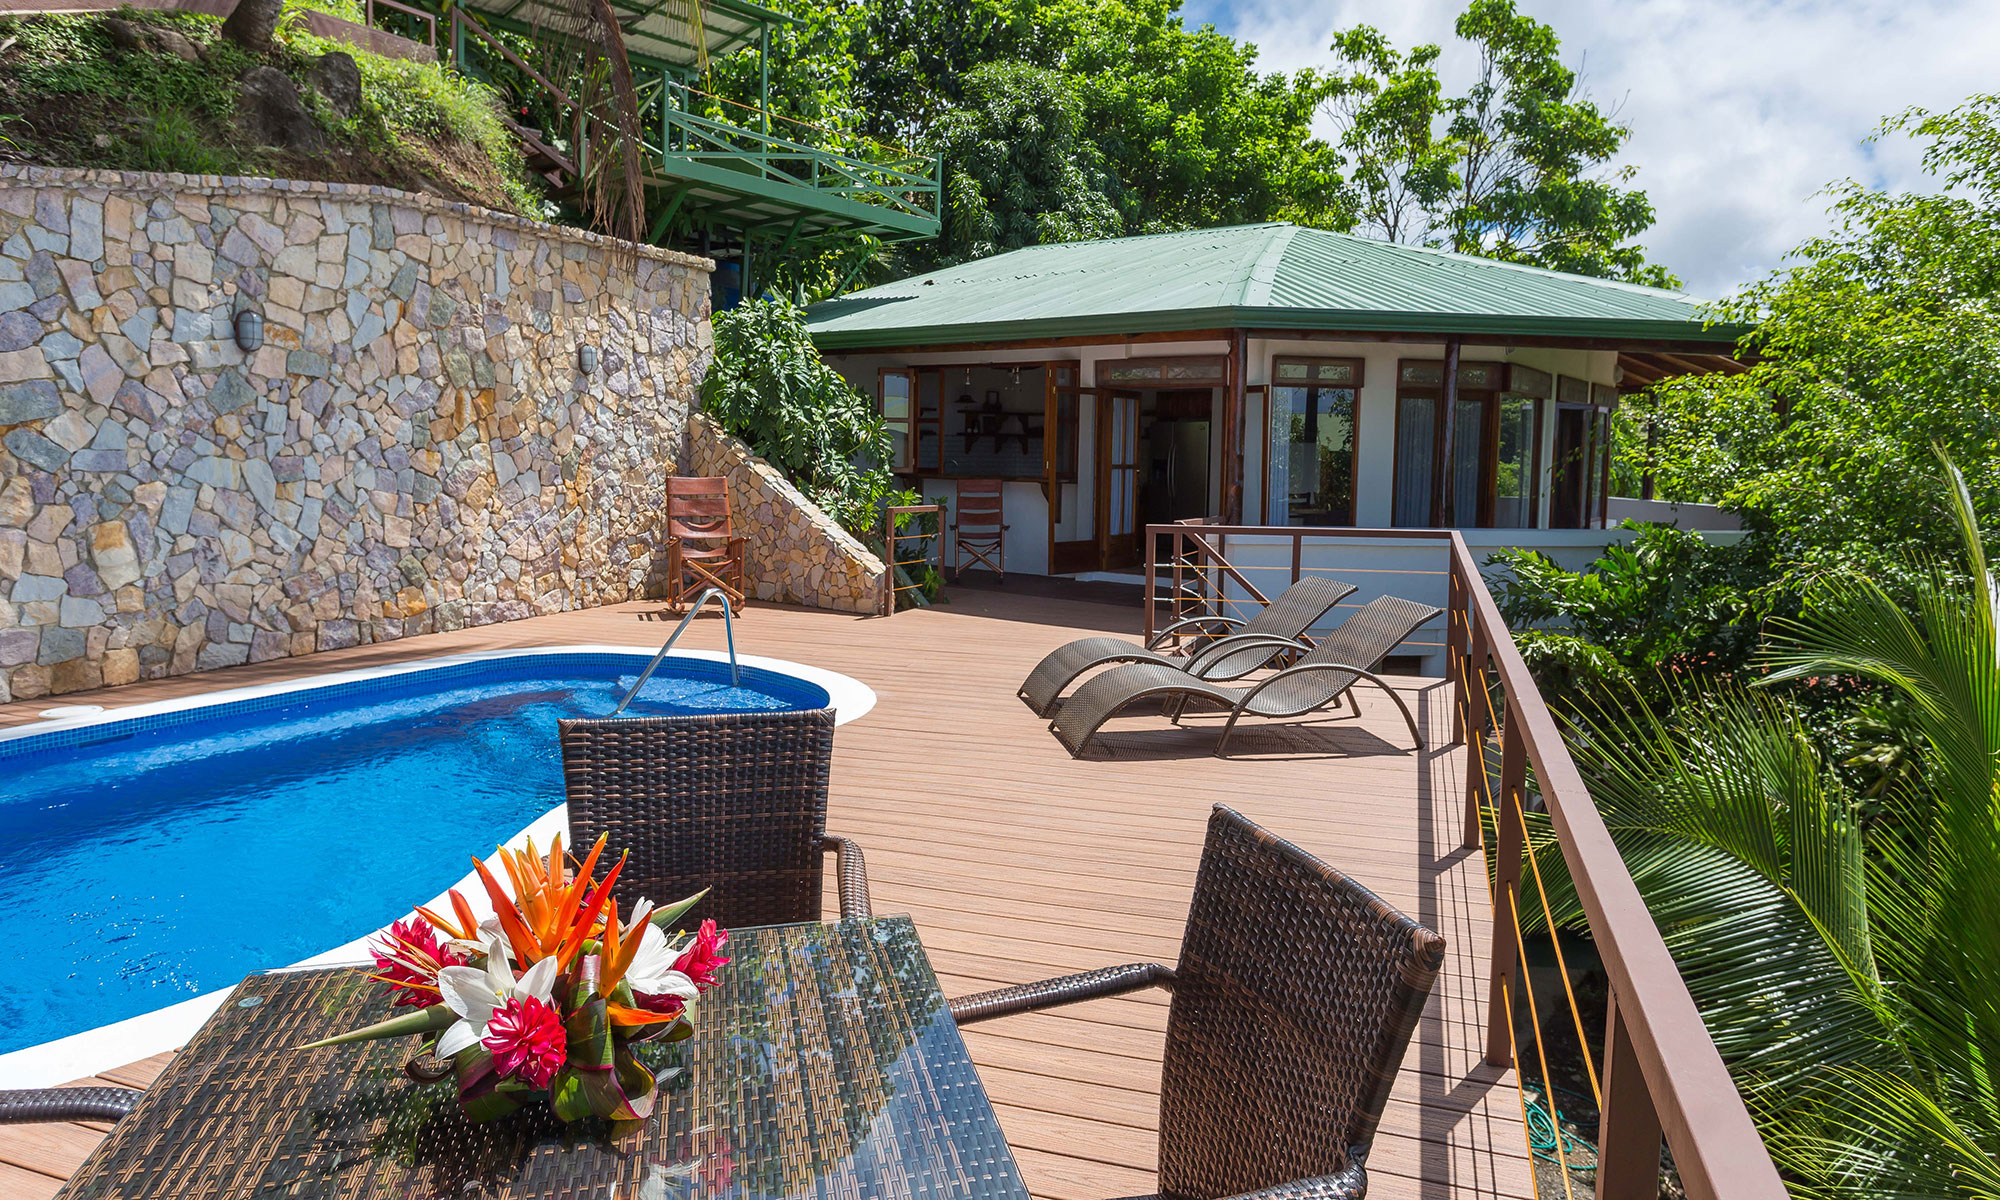 Villa Natura pool, deck, and house